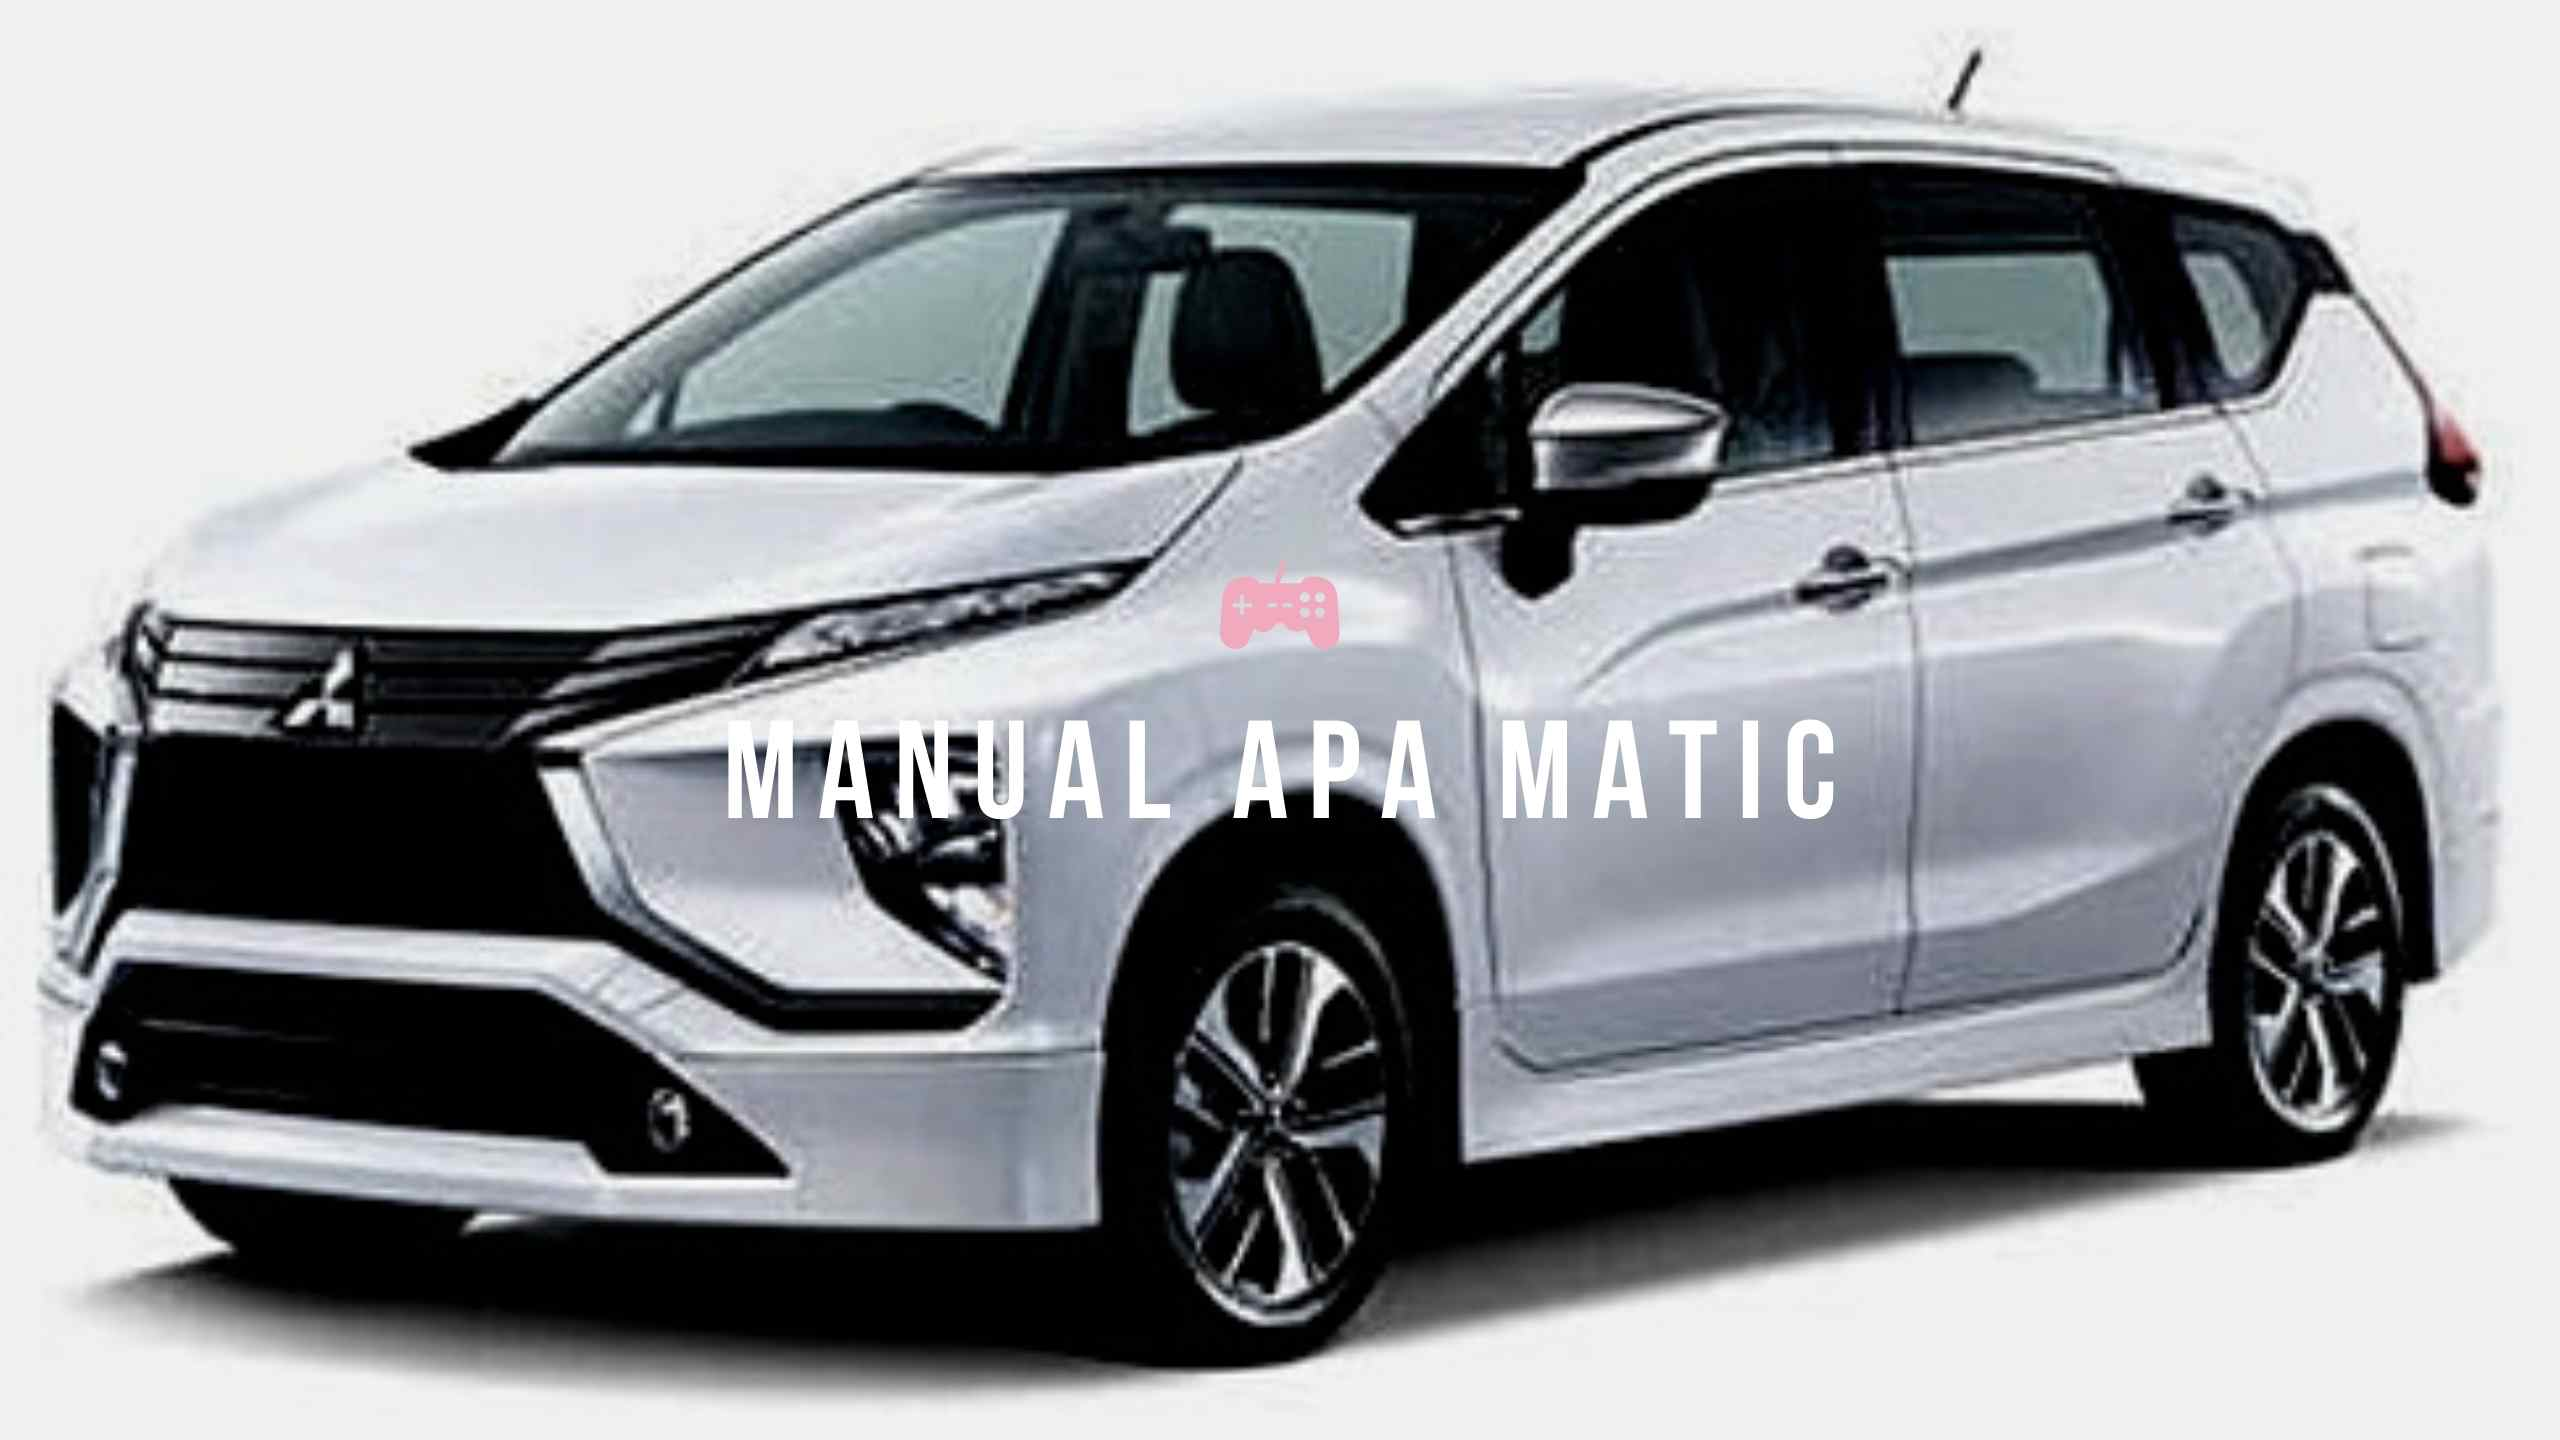 Manual Apa Matic